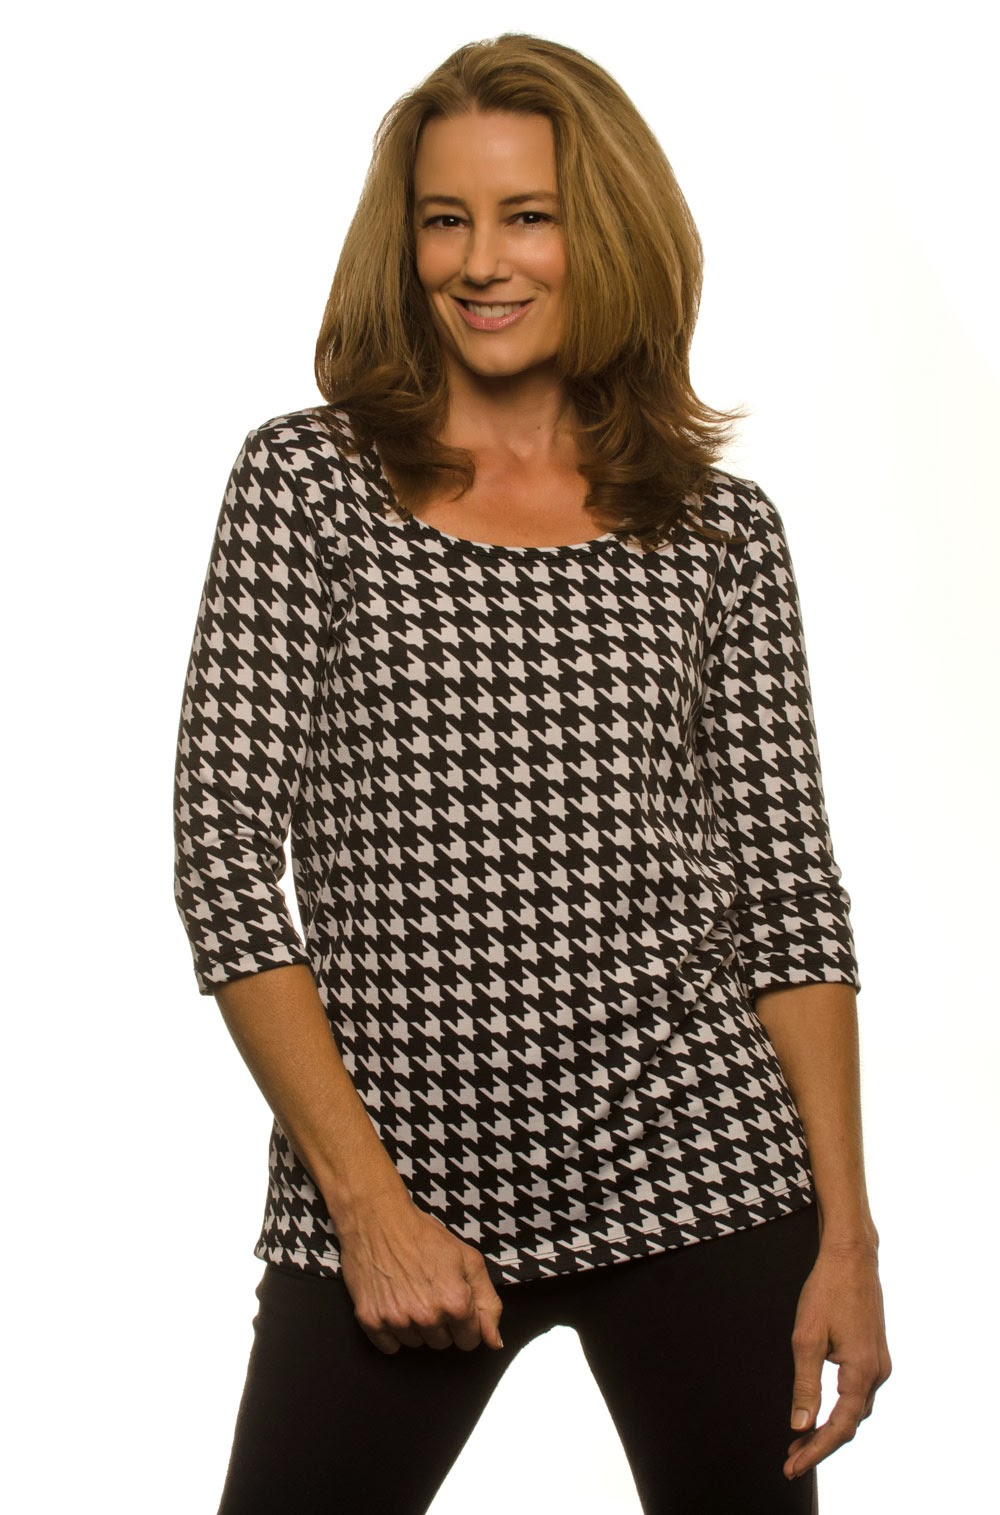 Houndstooth top for women over 40